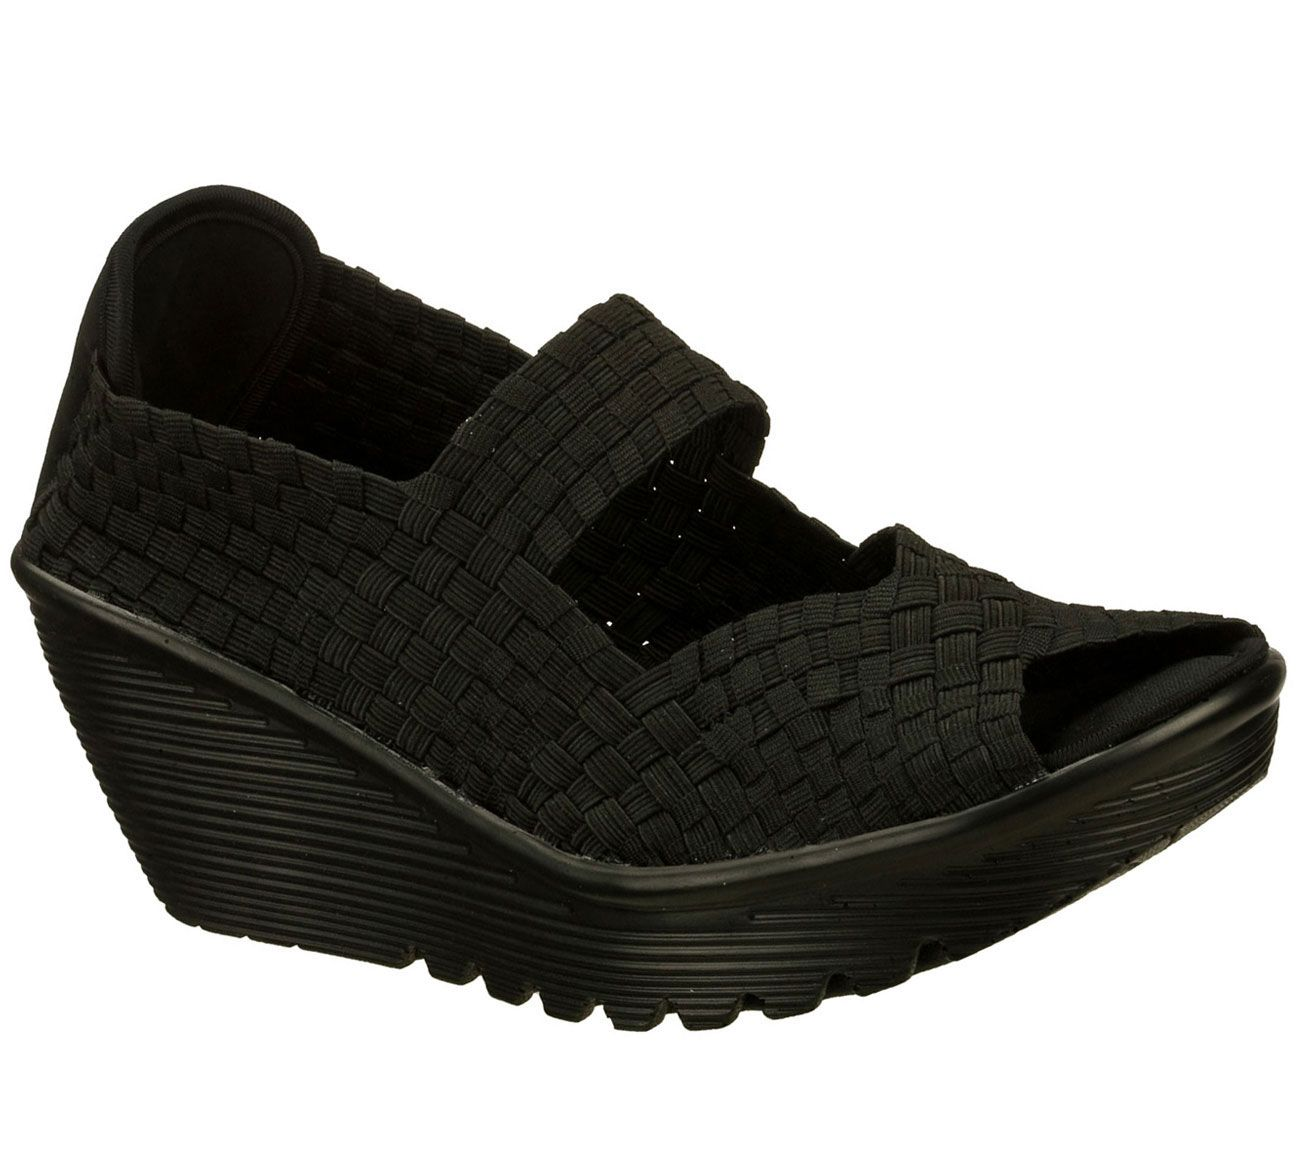 Unmatched comfort and pretty woven style comes in the SKECHERS Cali Parallel  sandal. Soft woven